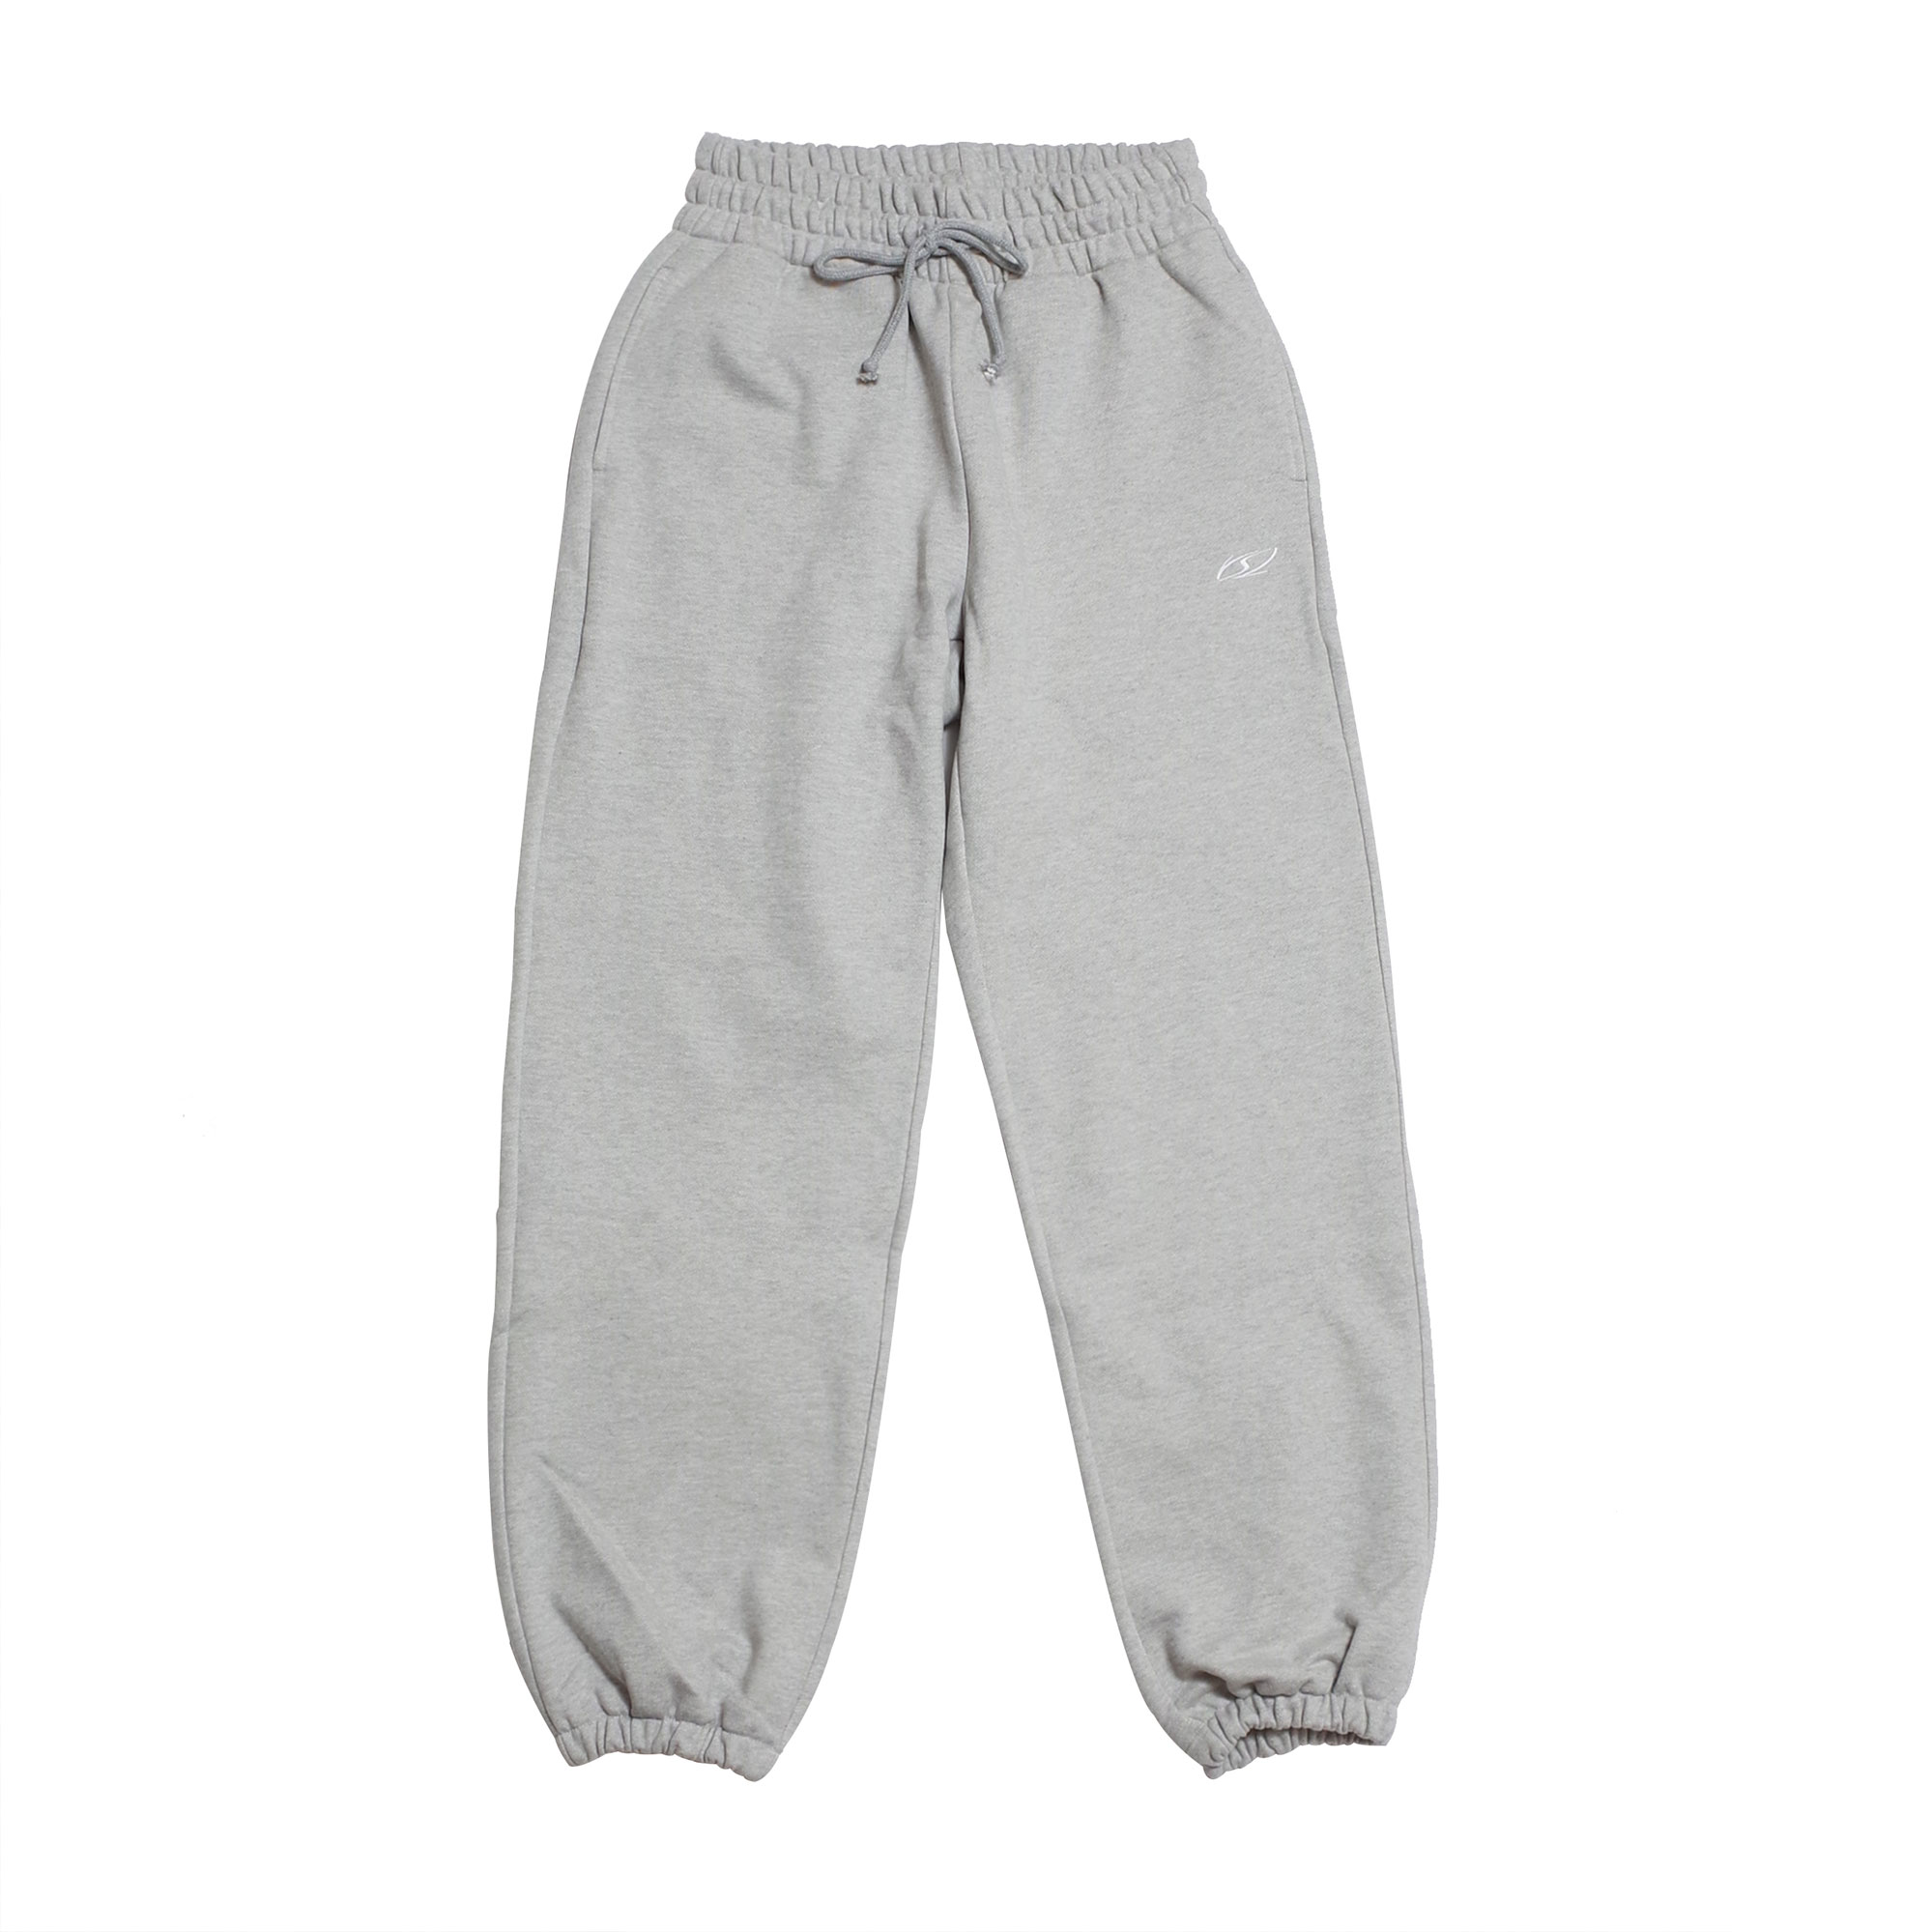 VSL SWEAT PANTS - GRAY